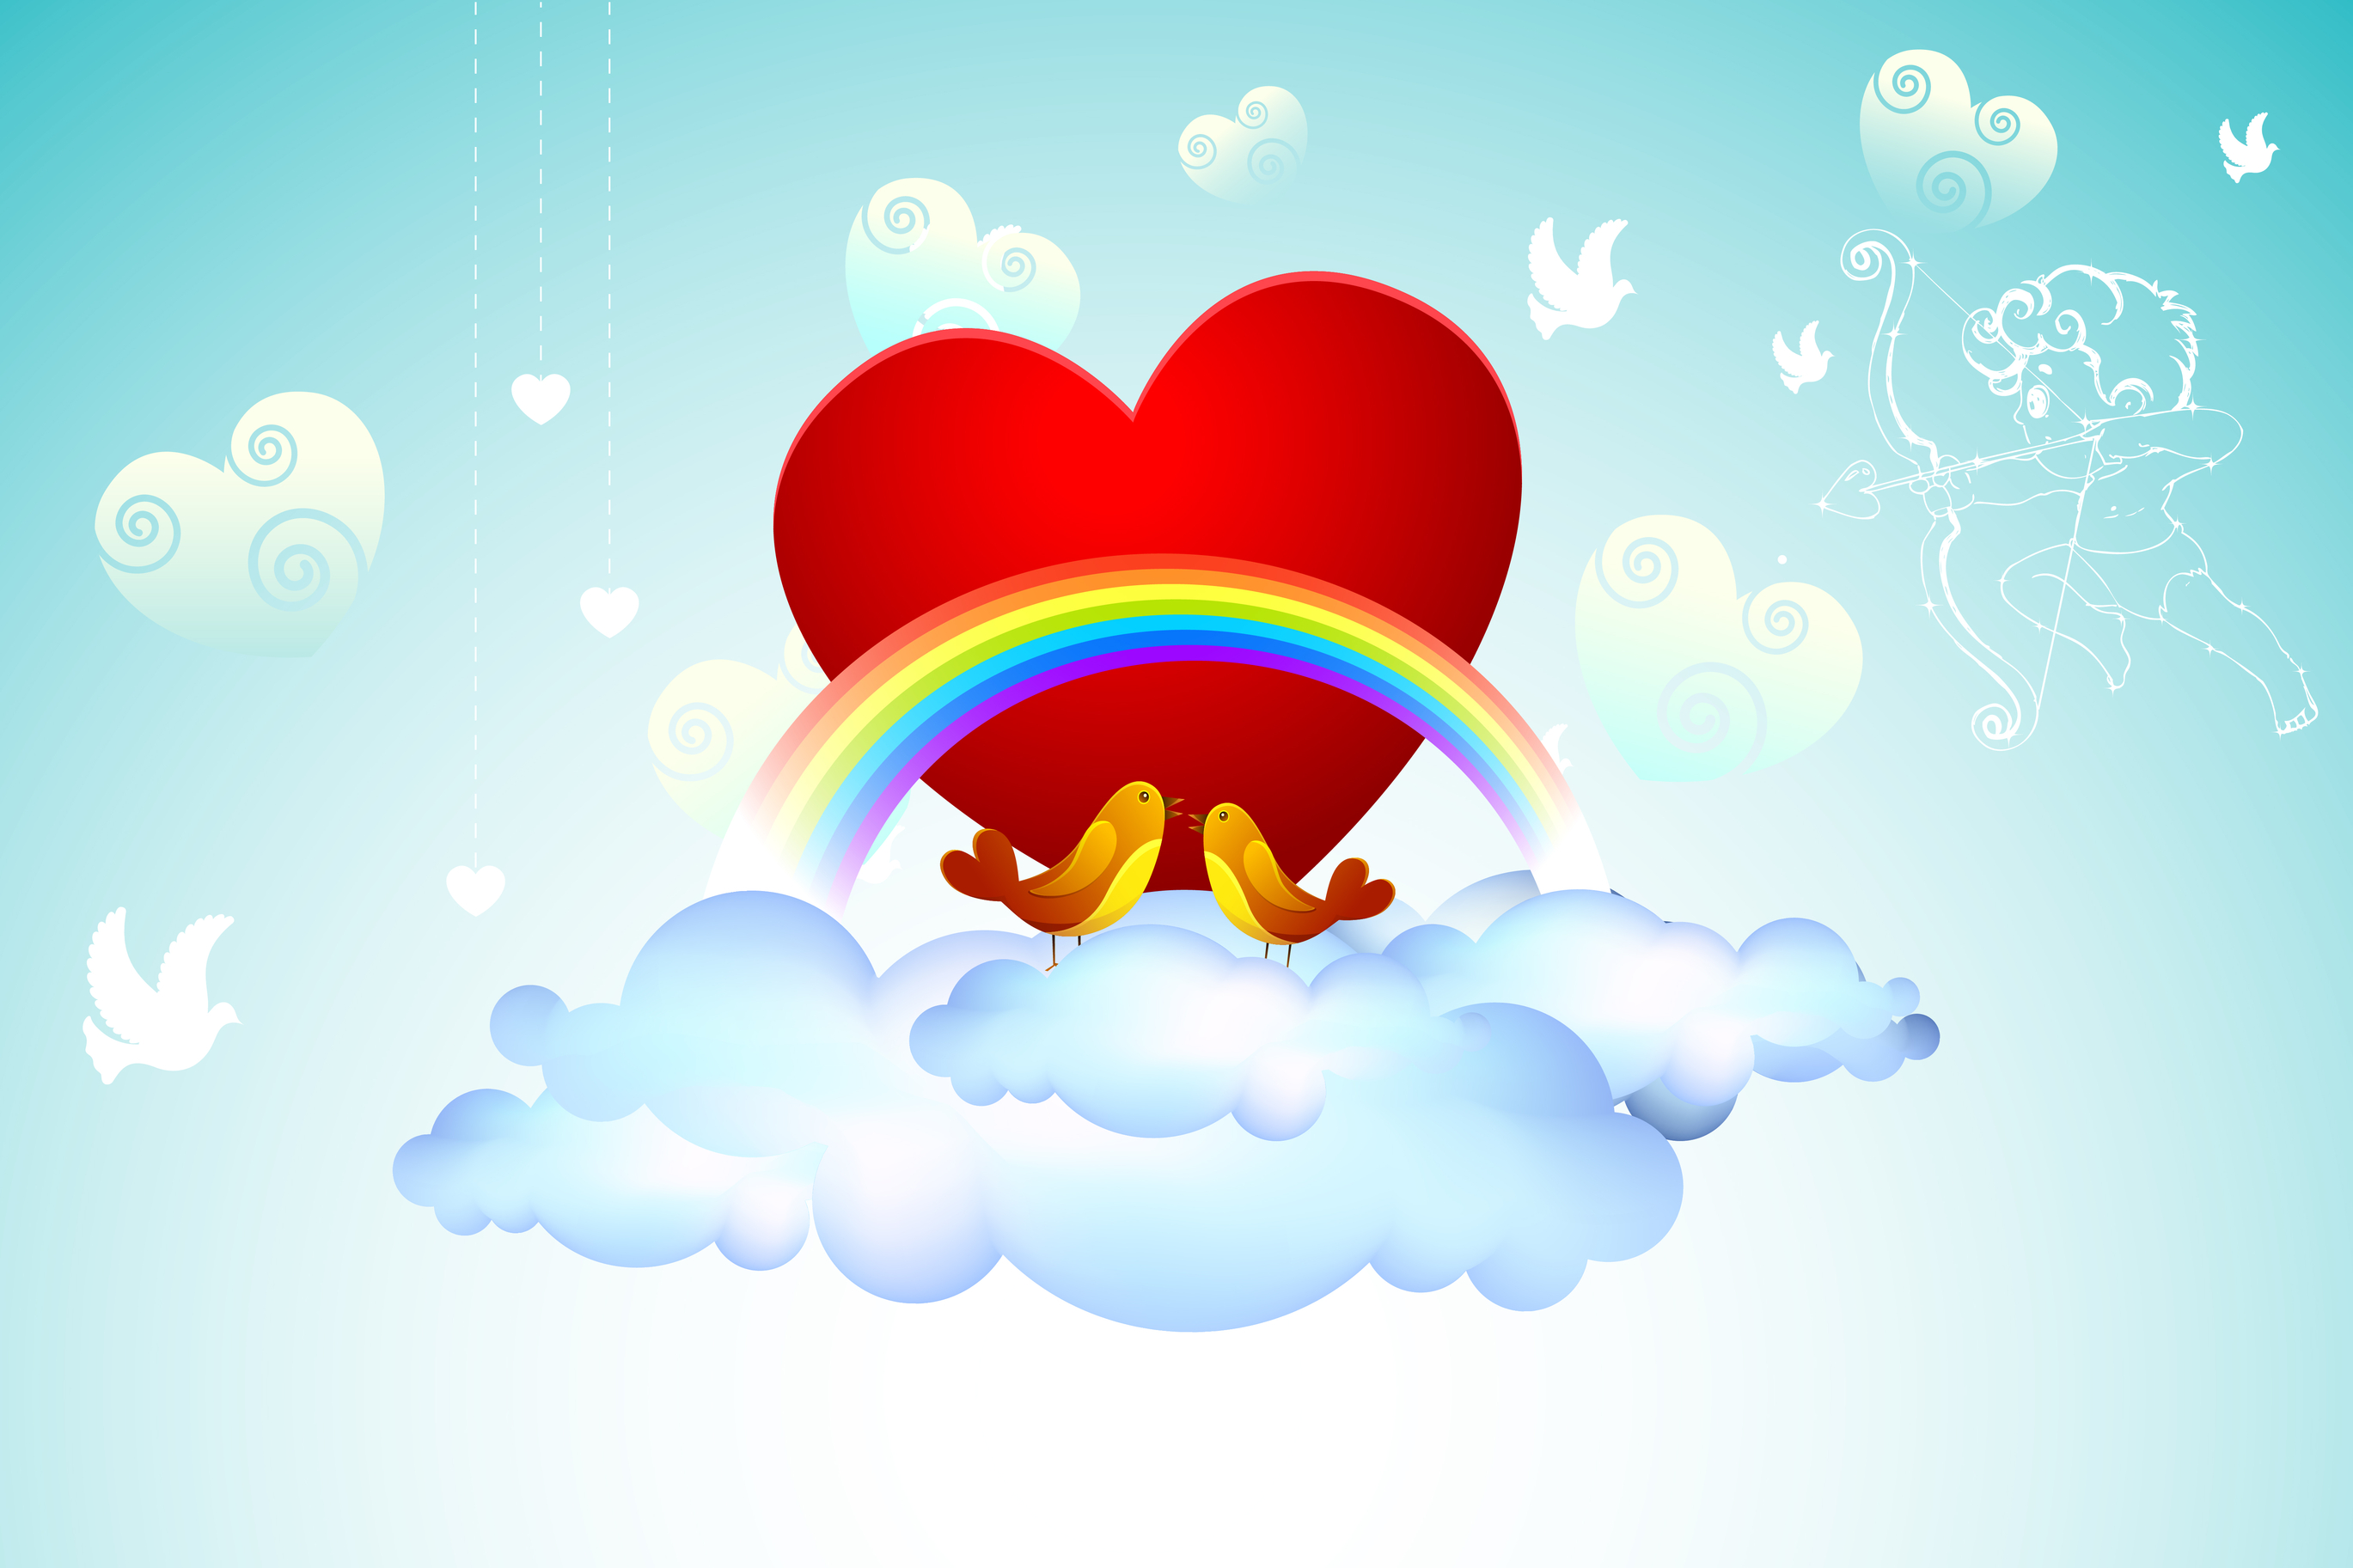 dreamstime l 22778782 Have You Decided Which Cloud Will Be Your Valentine?